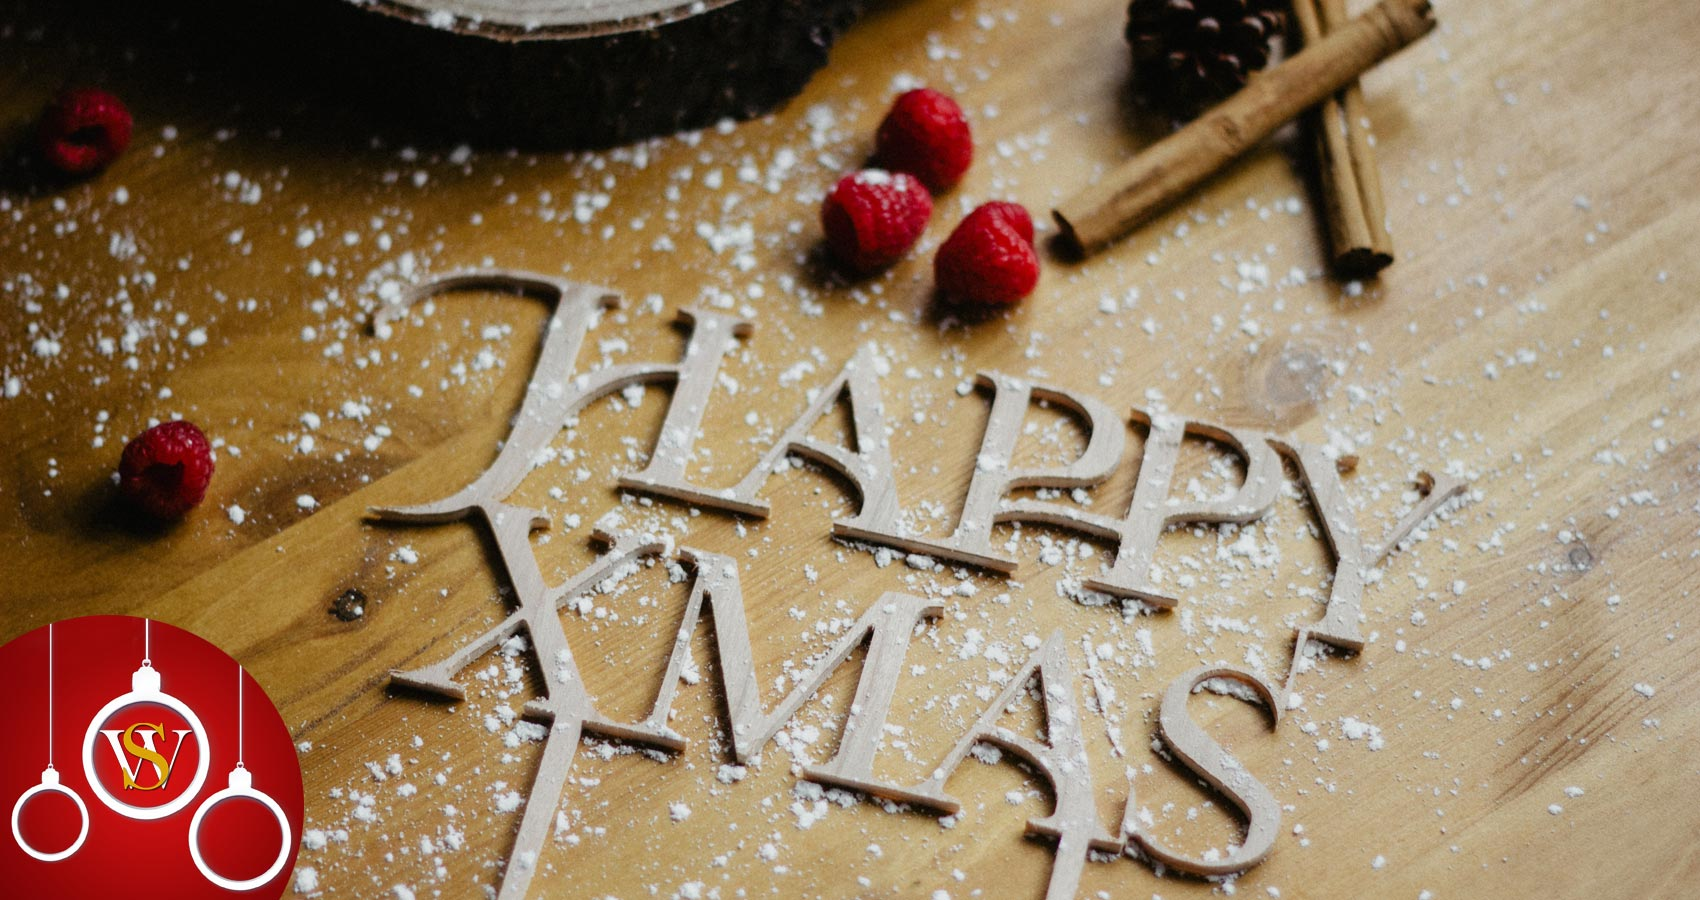 A Christmas Wish, a poem by Jane Briganti at Spillwords.com